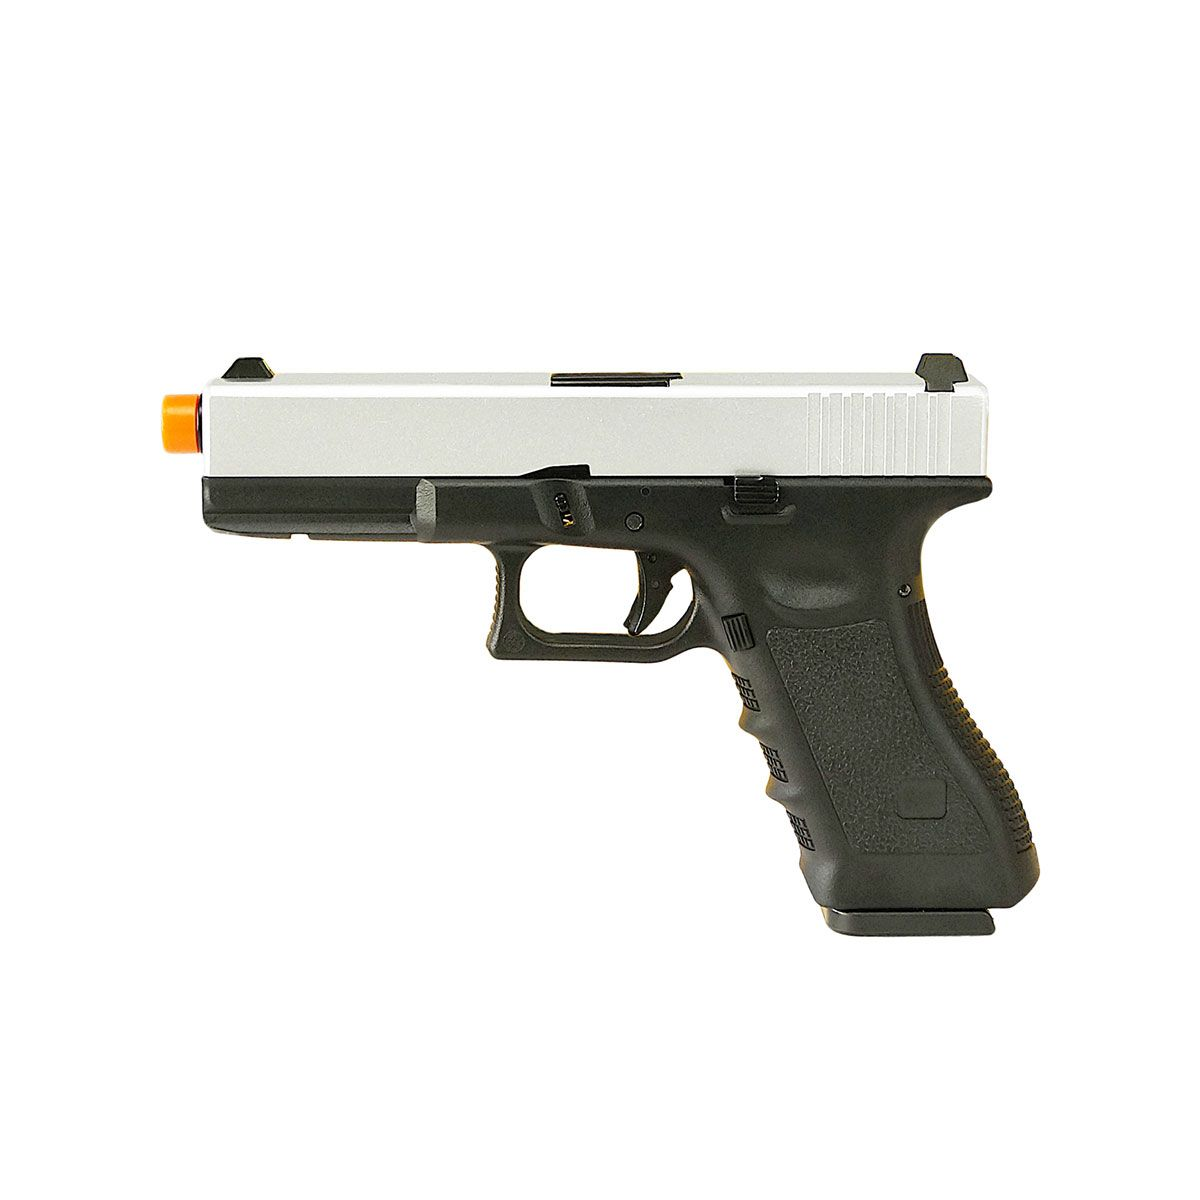 Pistola de Airsoft Army Armament R17 Silver Blowback GBB 6mm